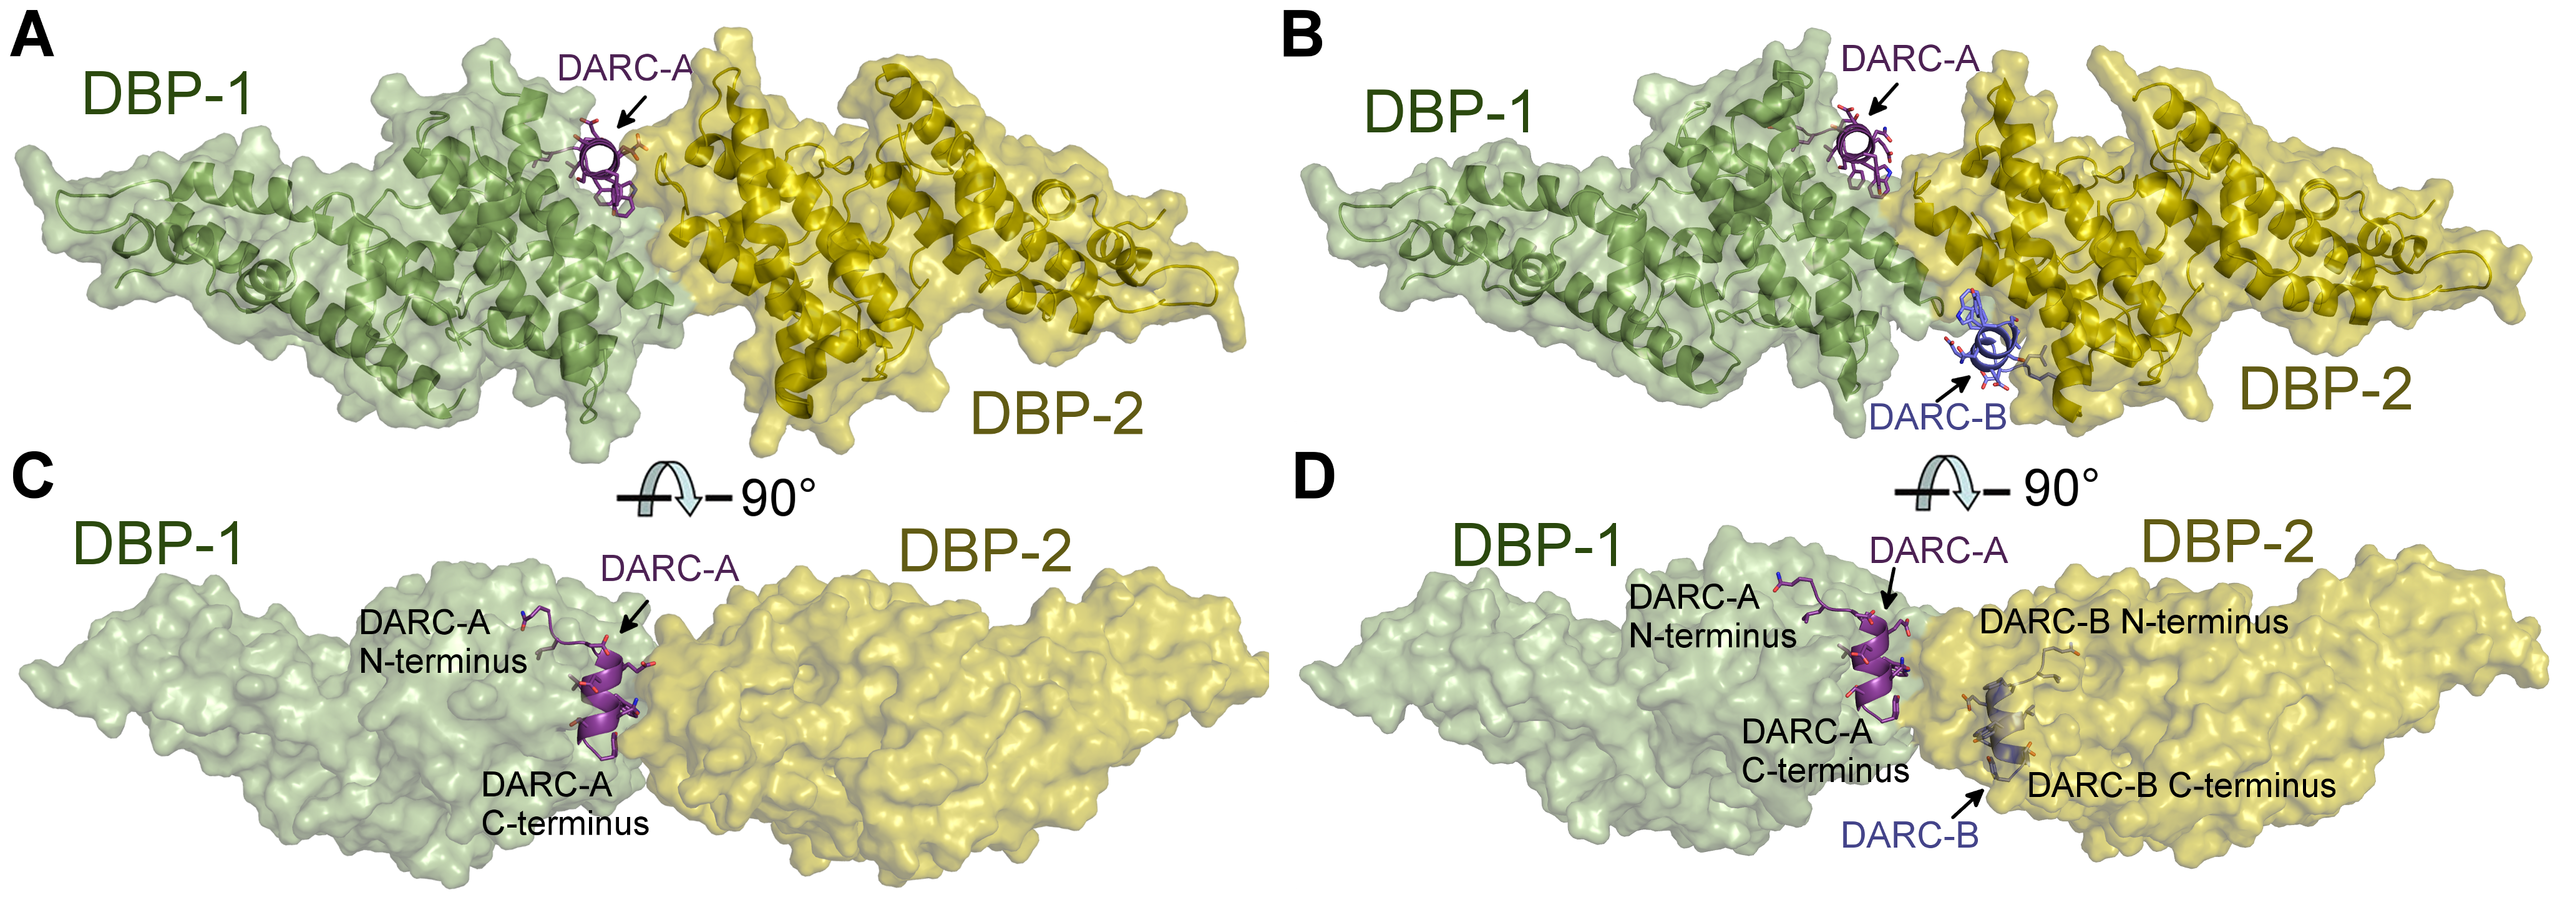 Crystal Structure of the DBP-RII∶DARC heterotrimer and heterotetramer.